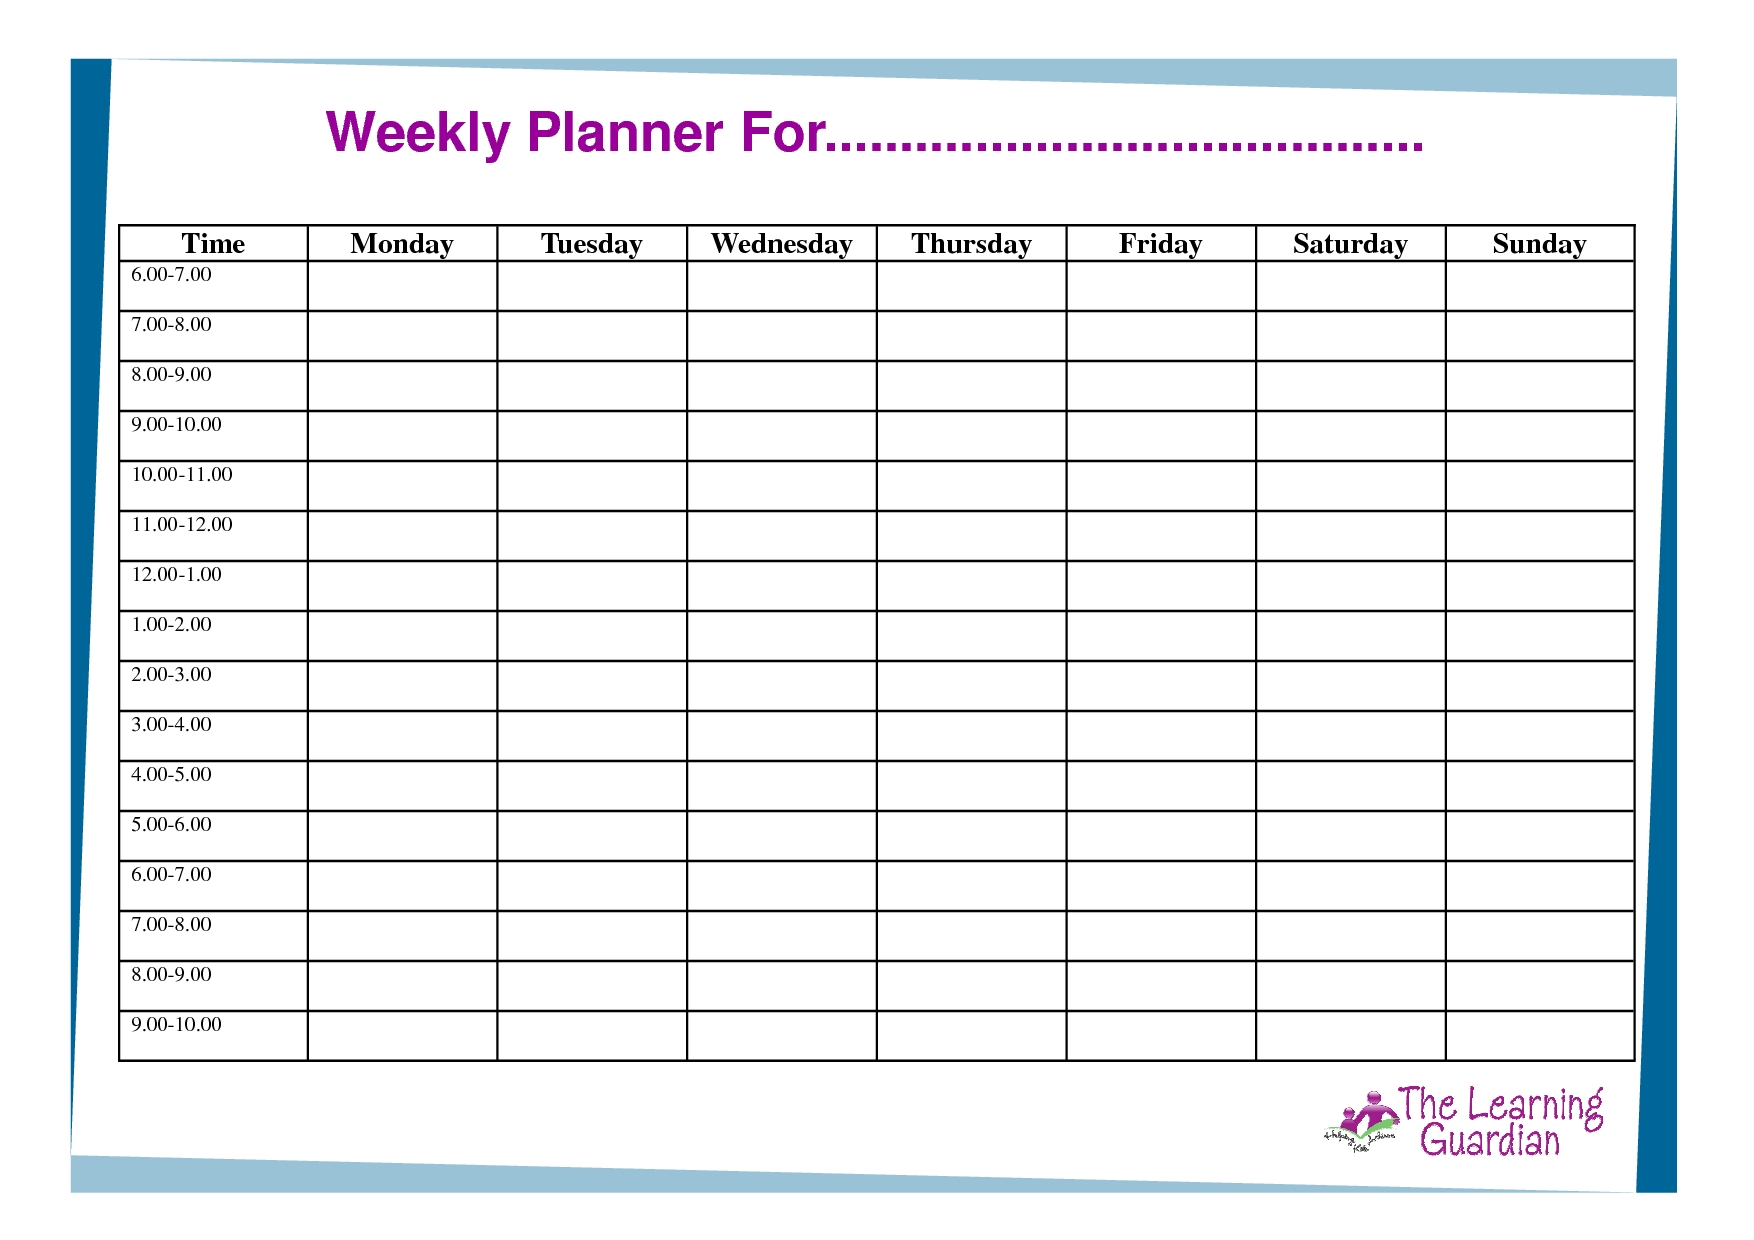 Free Printable Weekly Calendar Templates | Weekly Planner For Time  Monday To Friday Weekly Planner